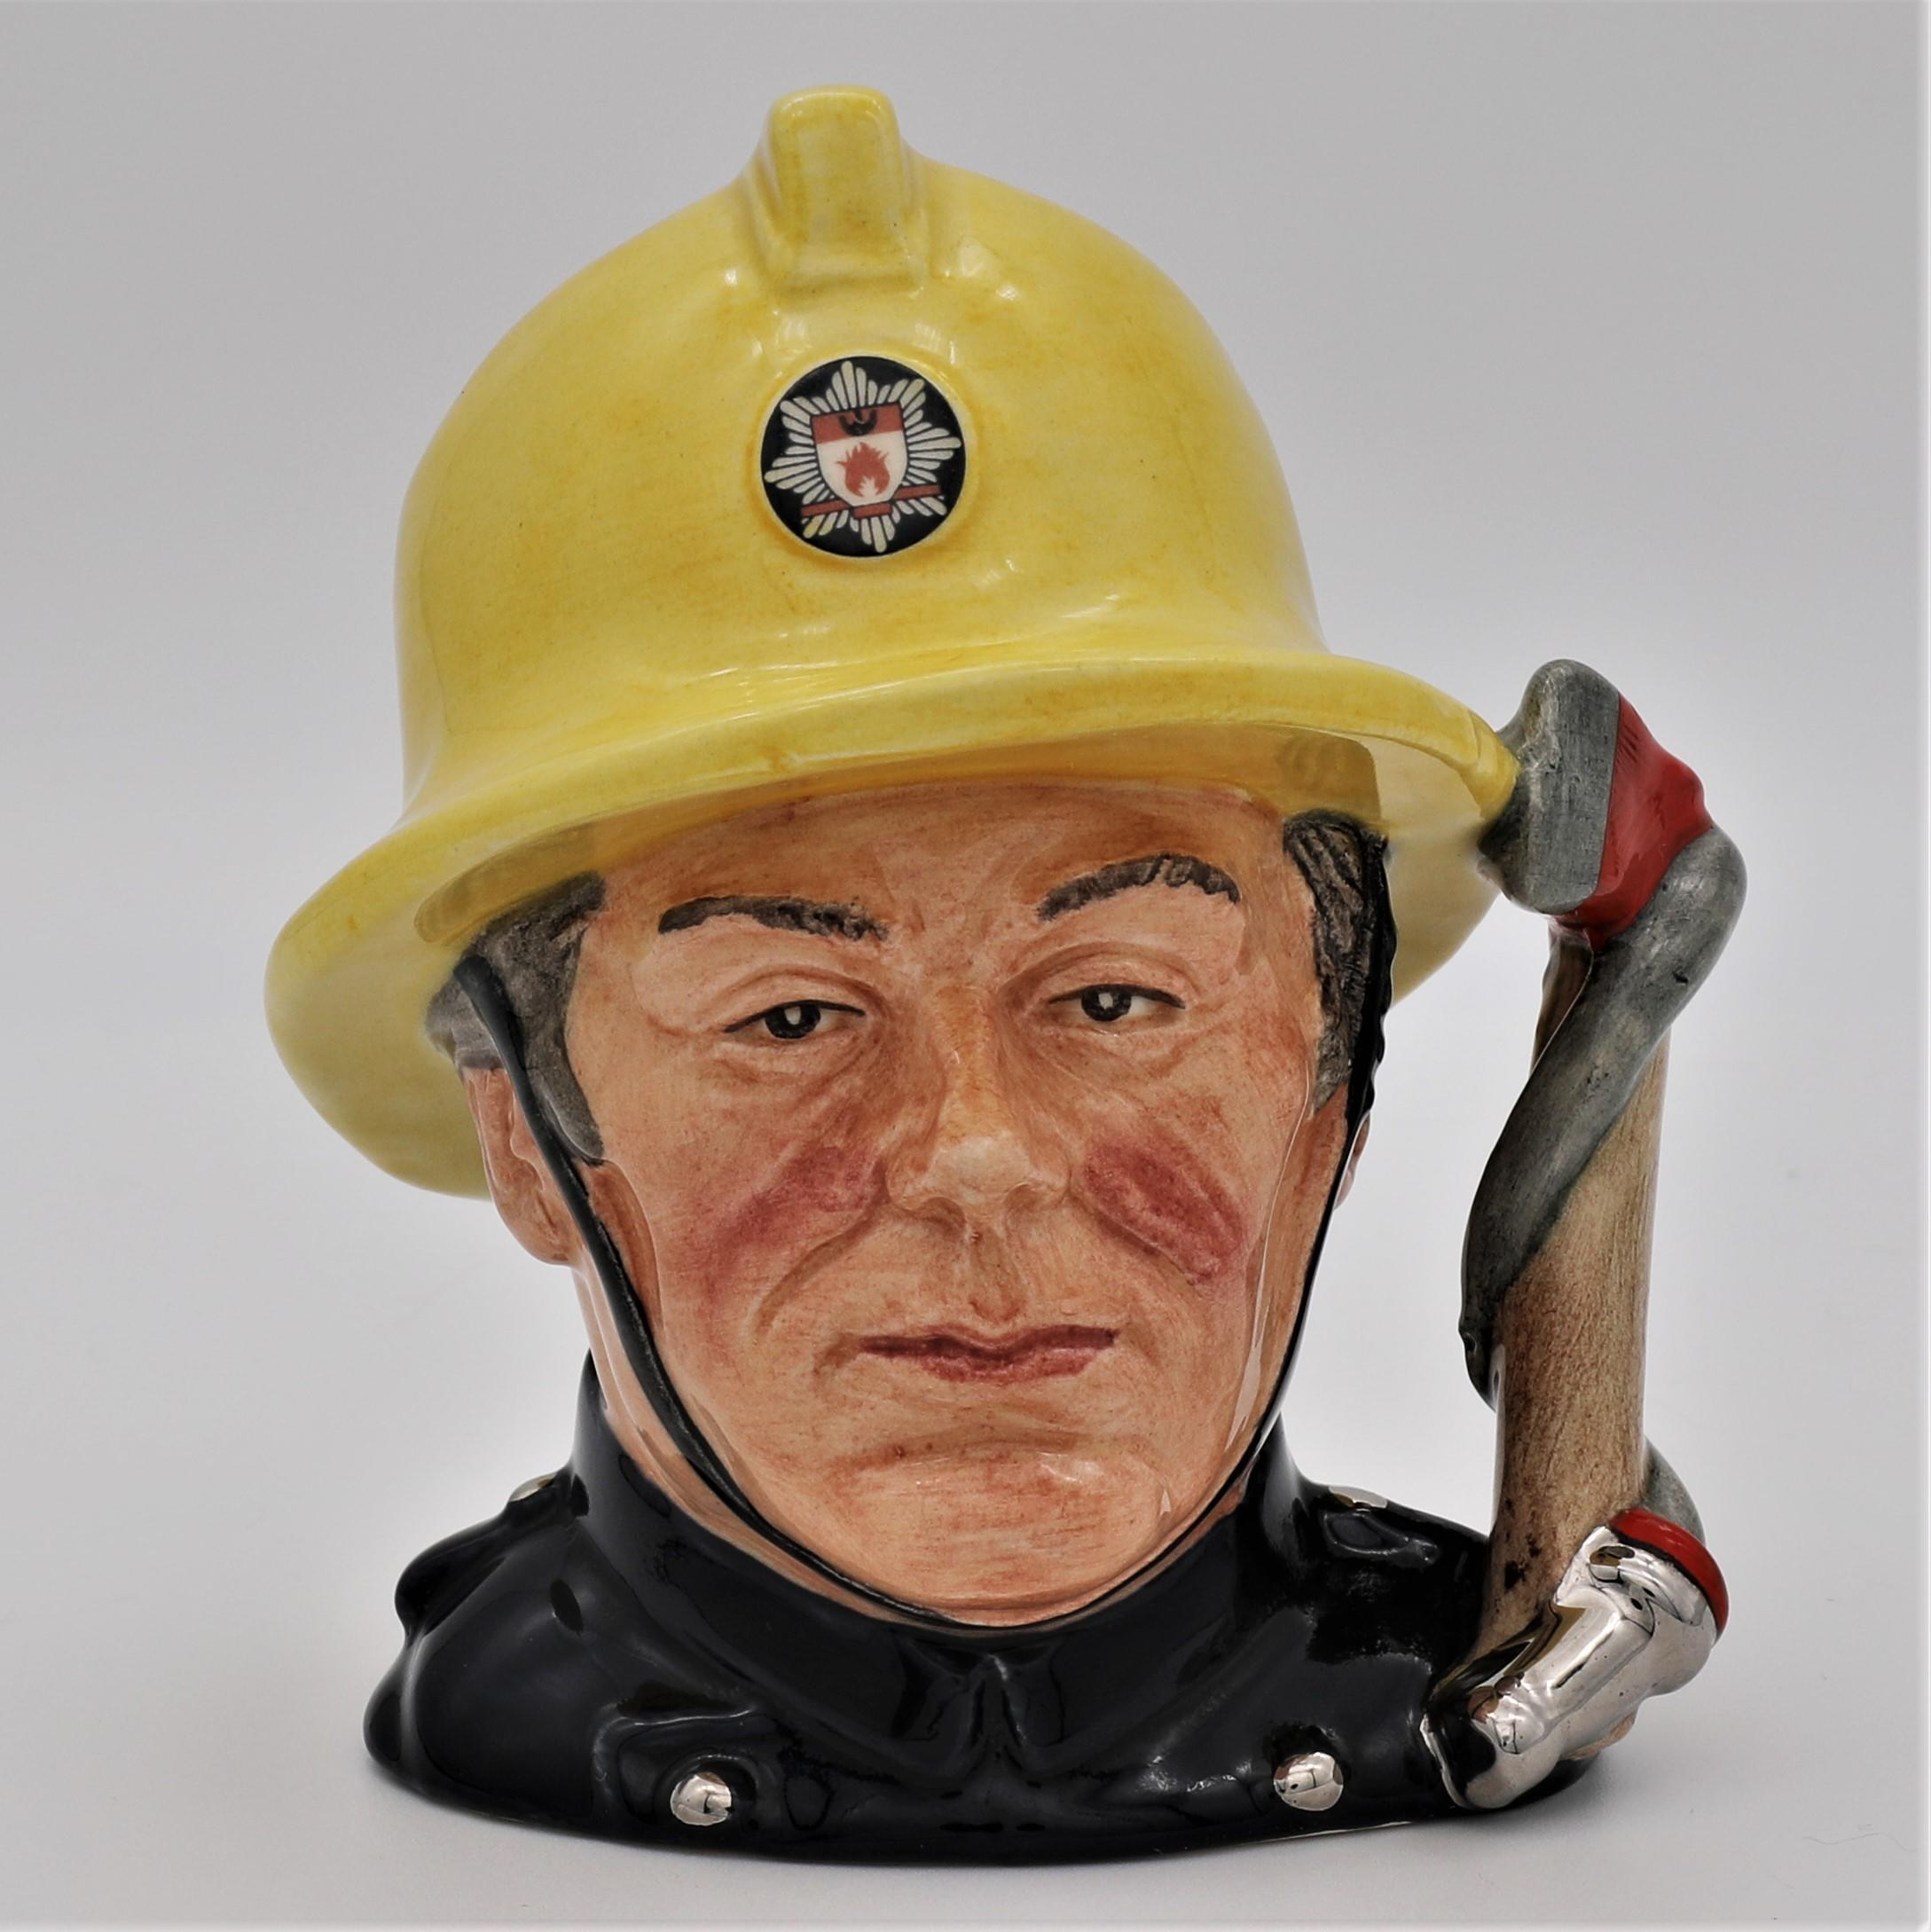 Royal Doulton D6839 The Fireman Character Jug - front